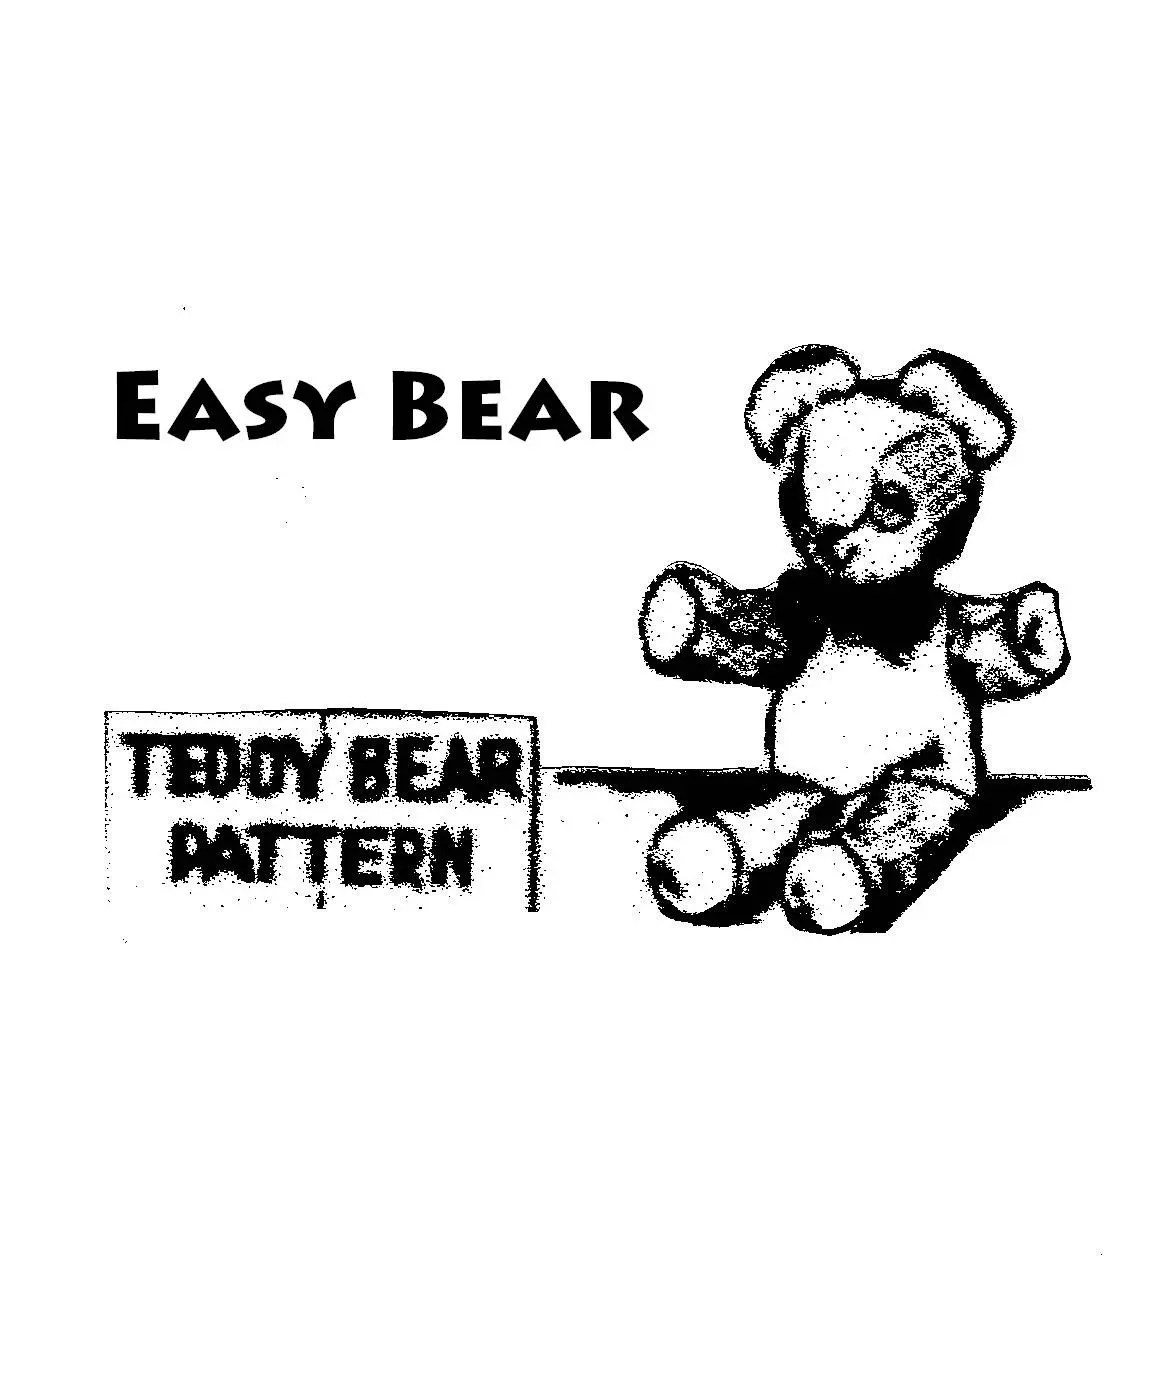 Teddy Bear Pattern Easy